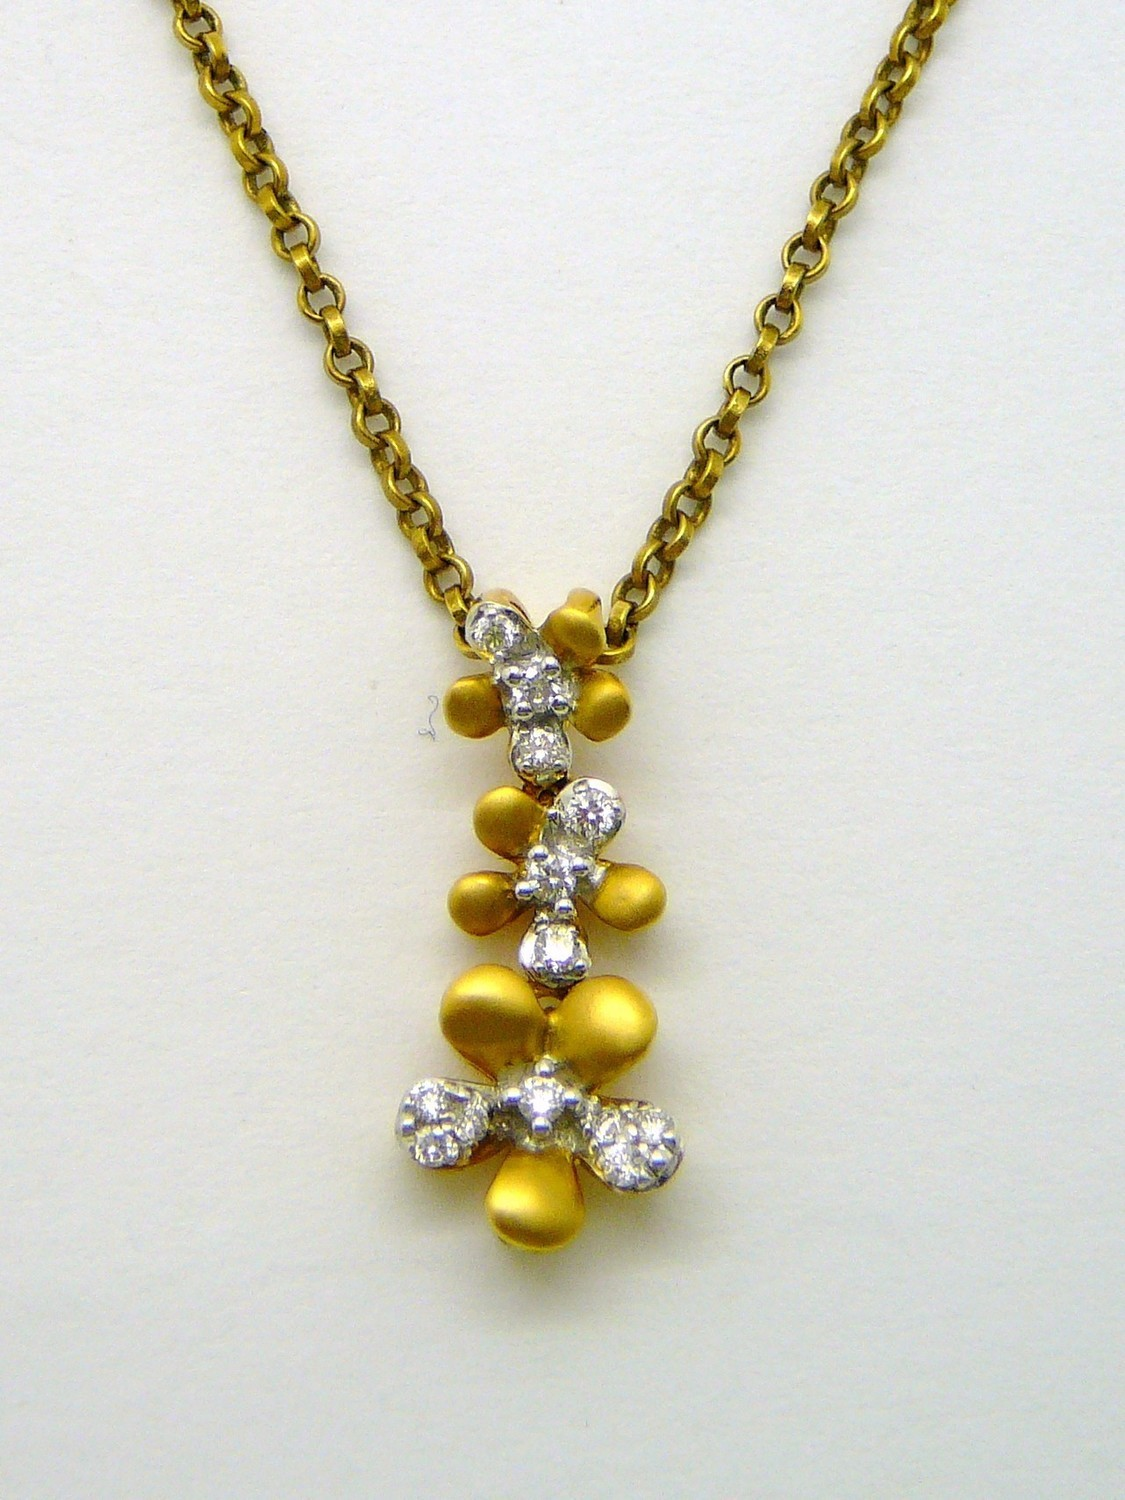 THREE FLOWERS, Drop Pendant. Chain Sold Separately